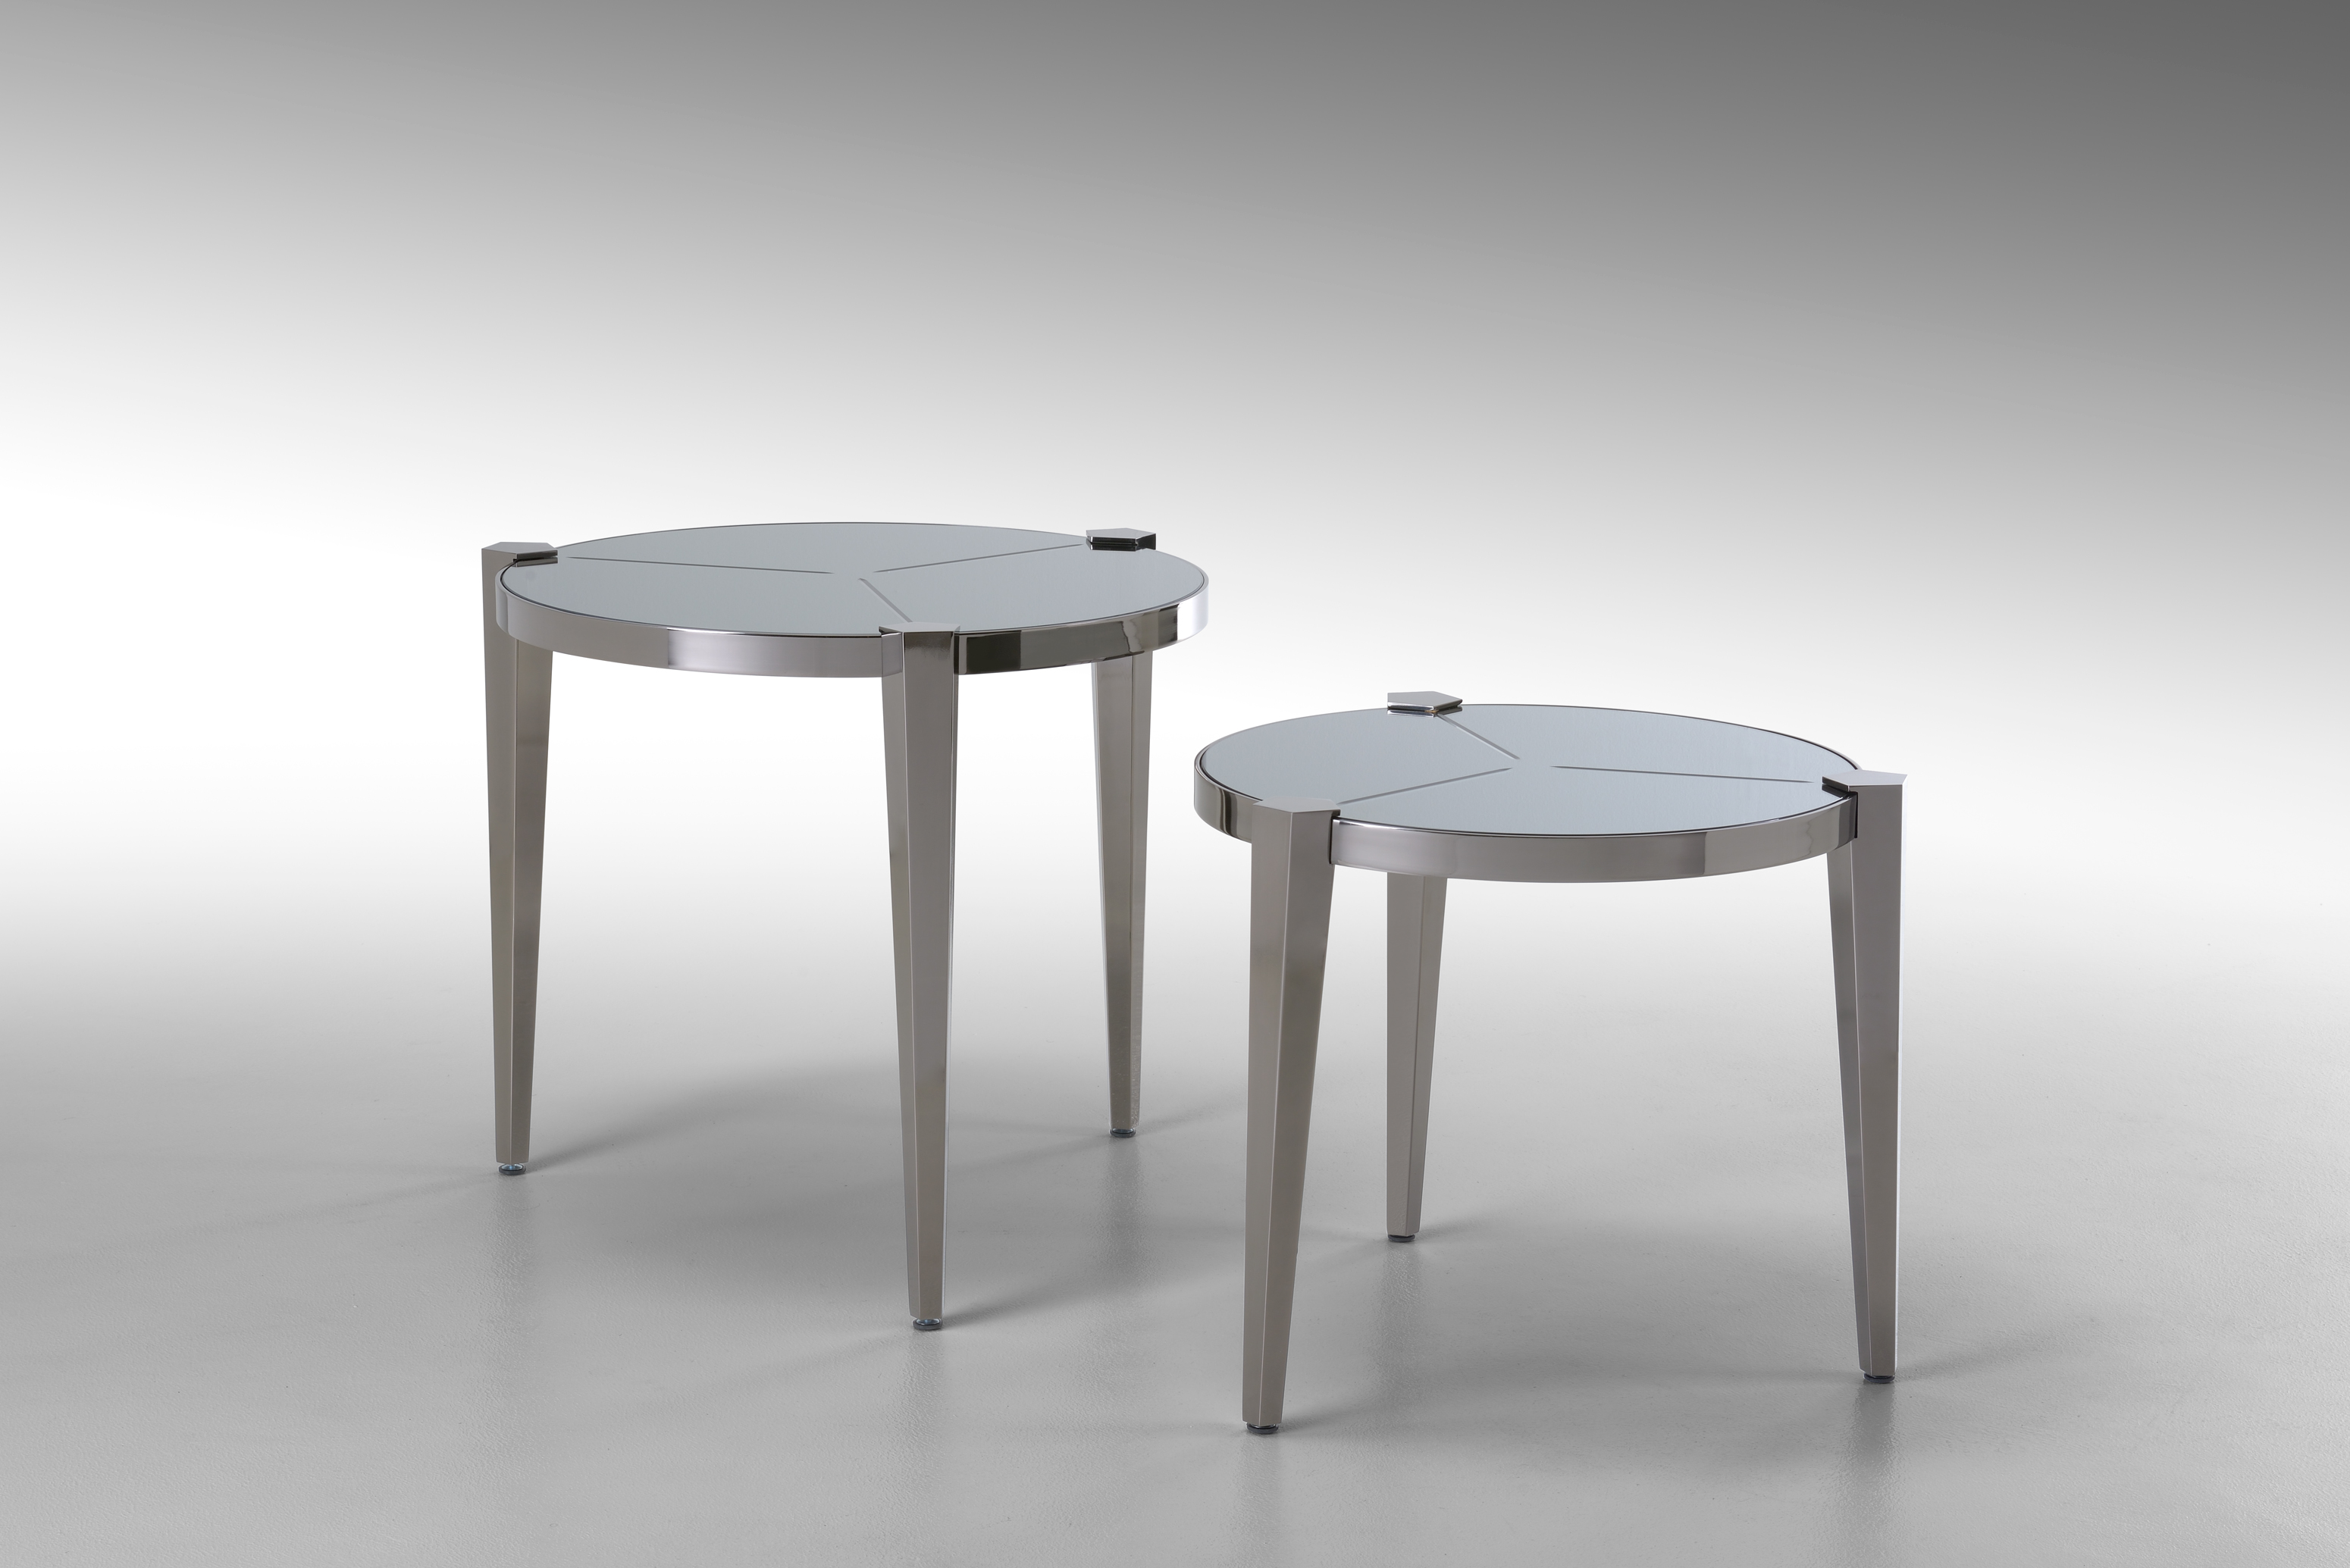 Kenzo maison style by jpc for Coffee tables regina